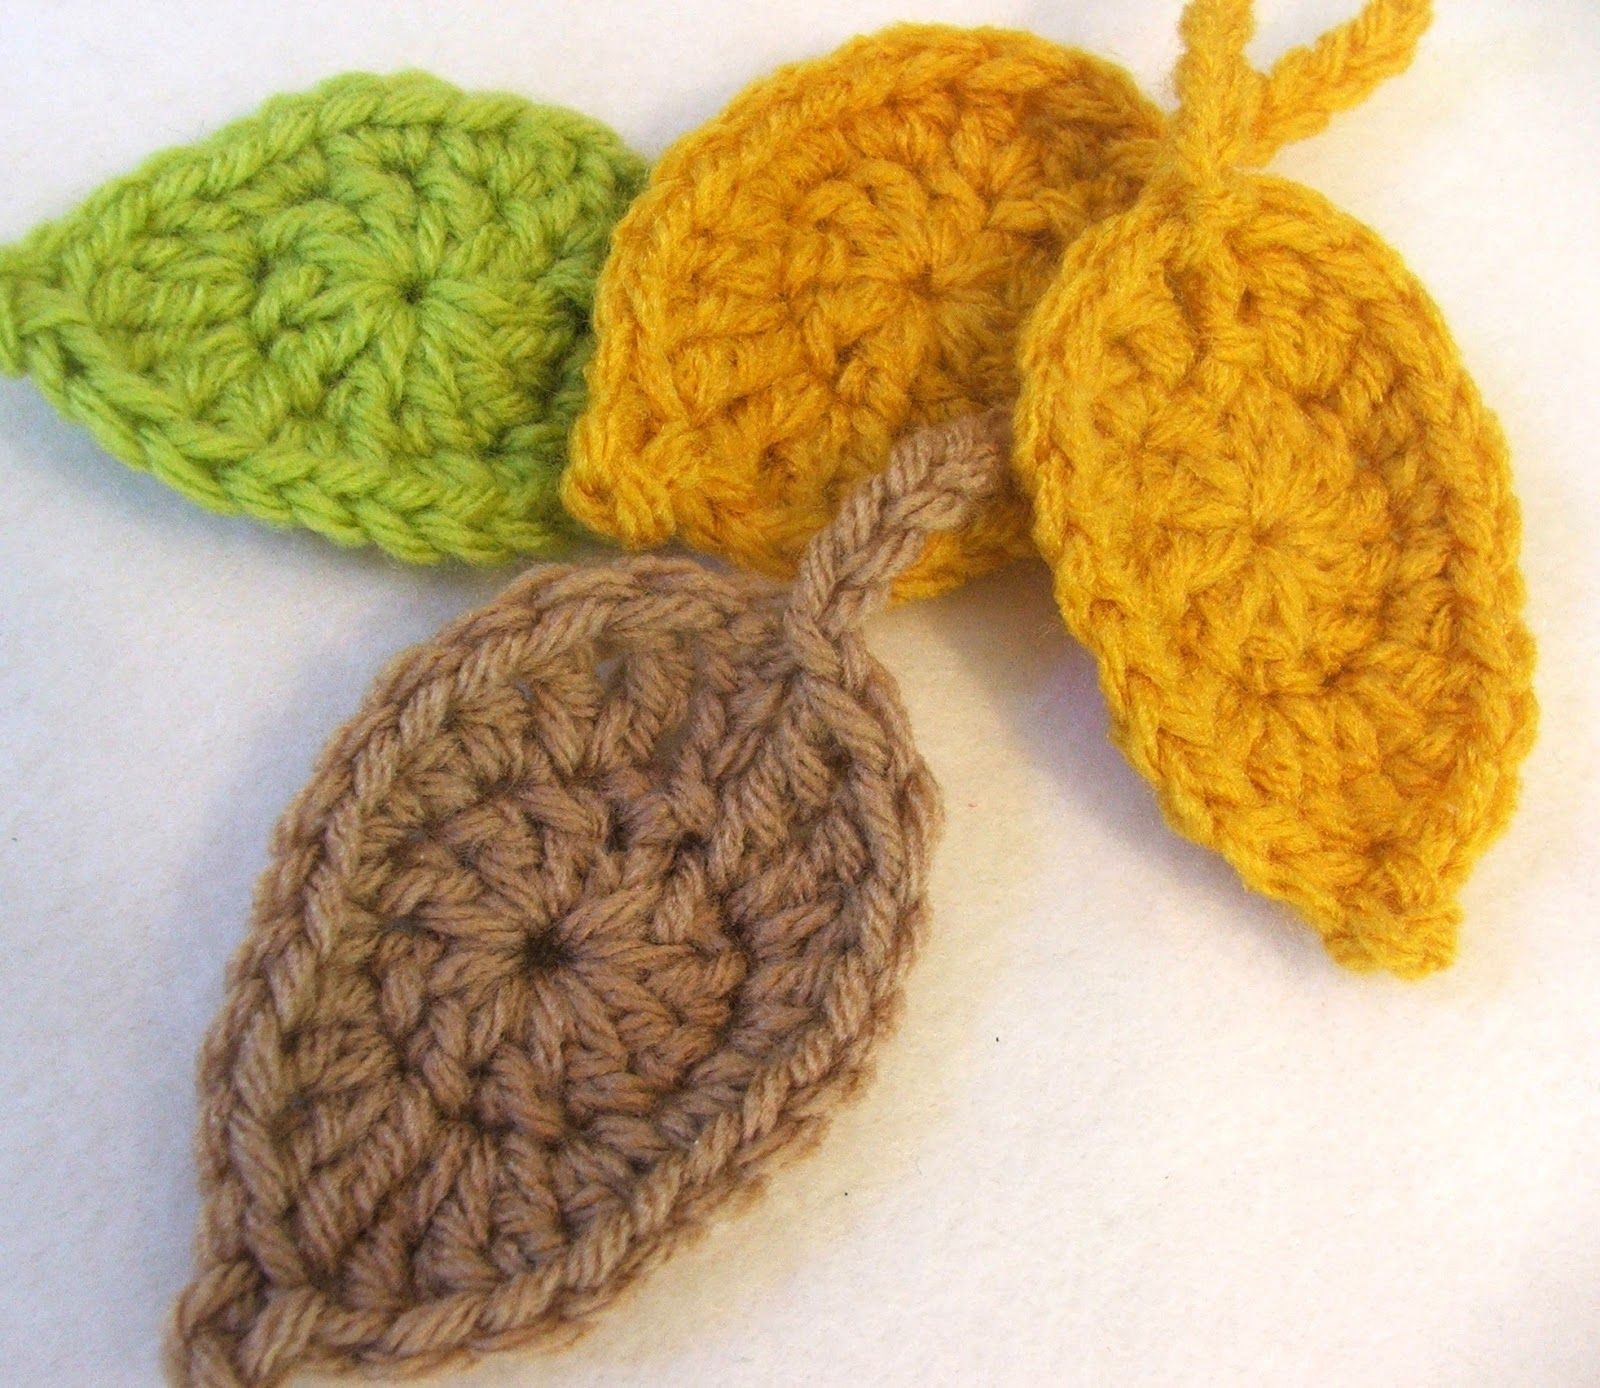 Susan\'s Hippie Crochet: Free Simple Leaf Crochet Pattern - The ...